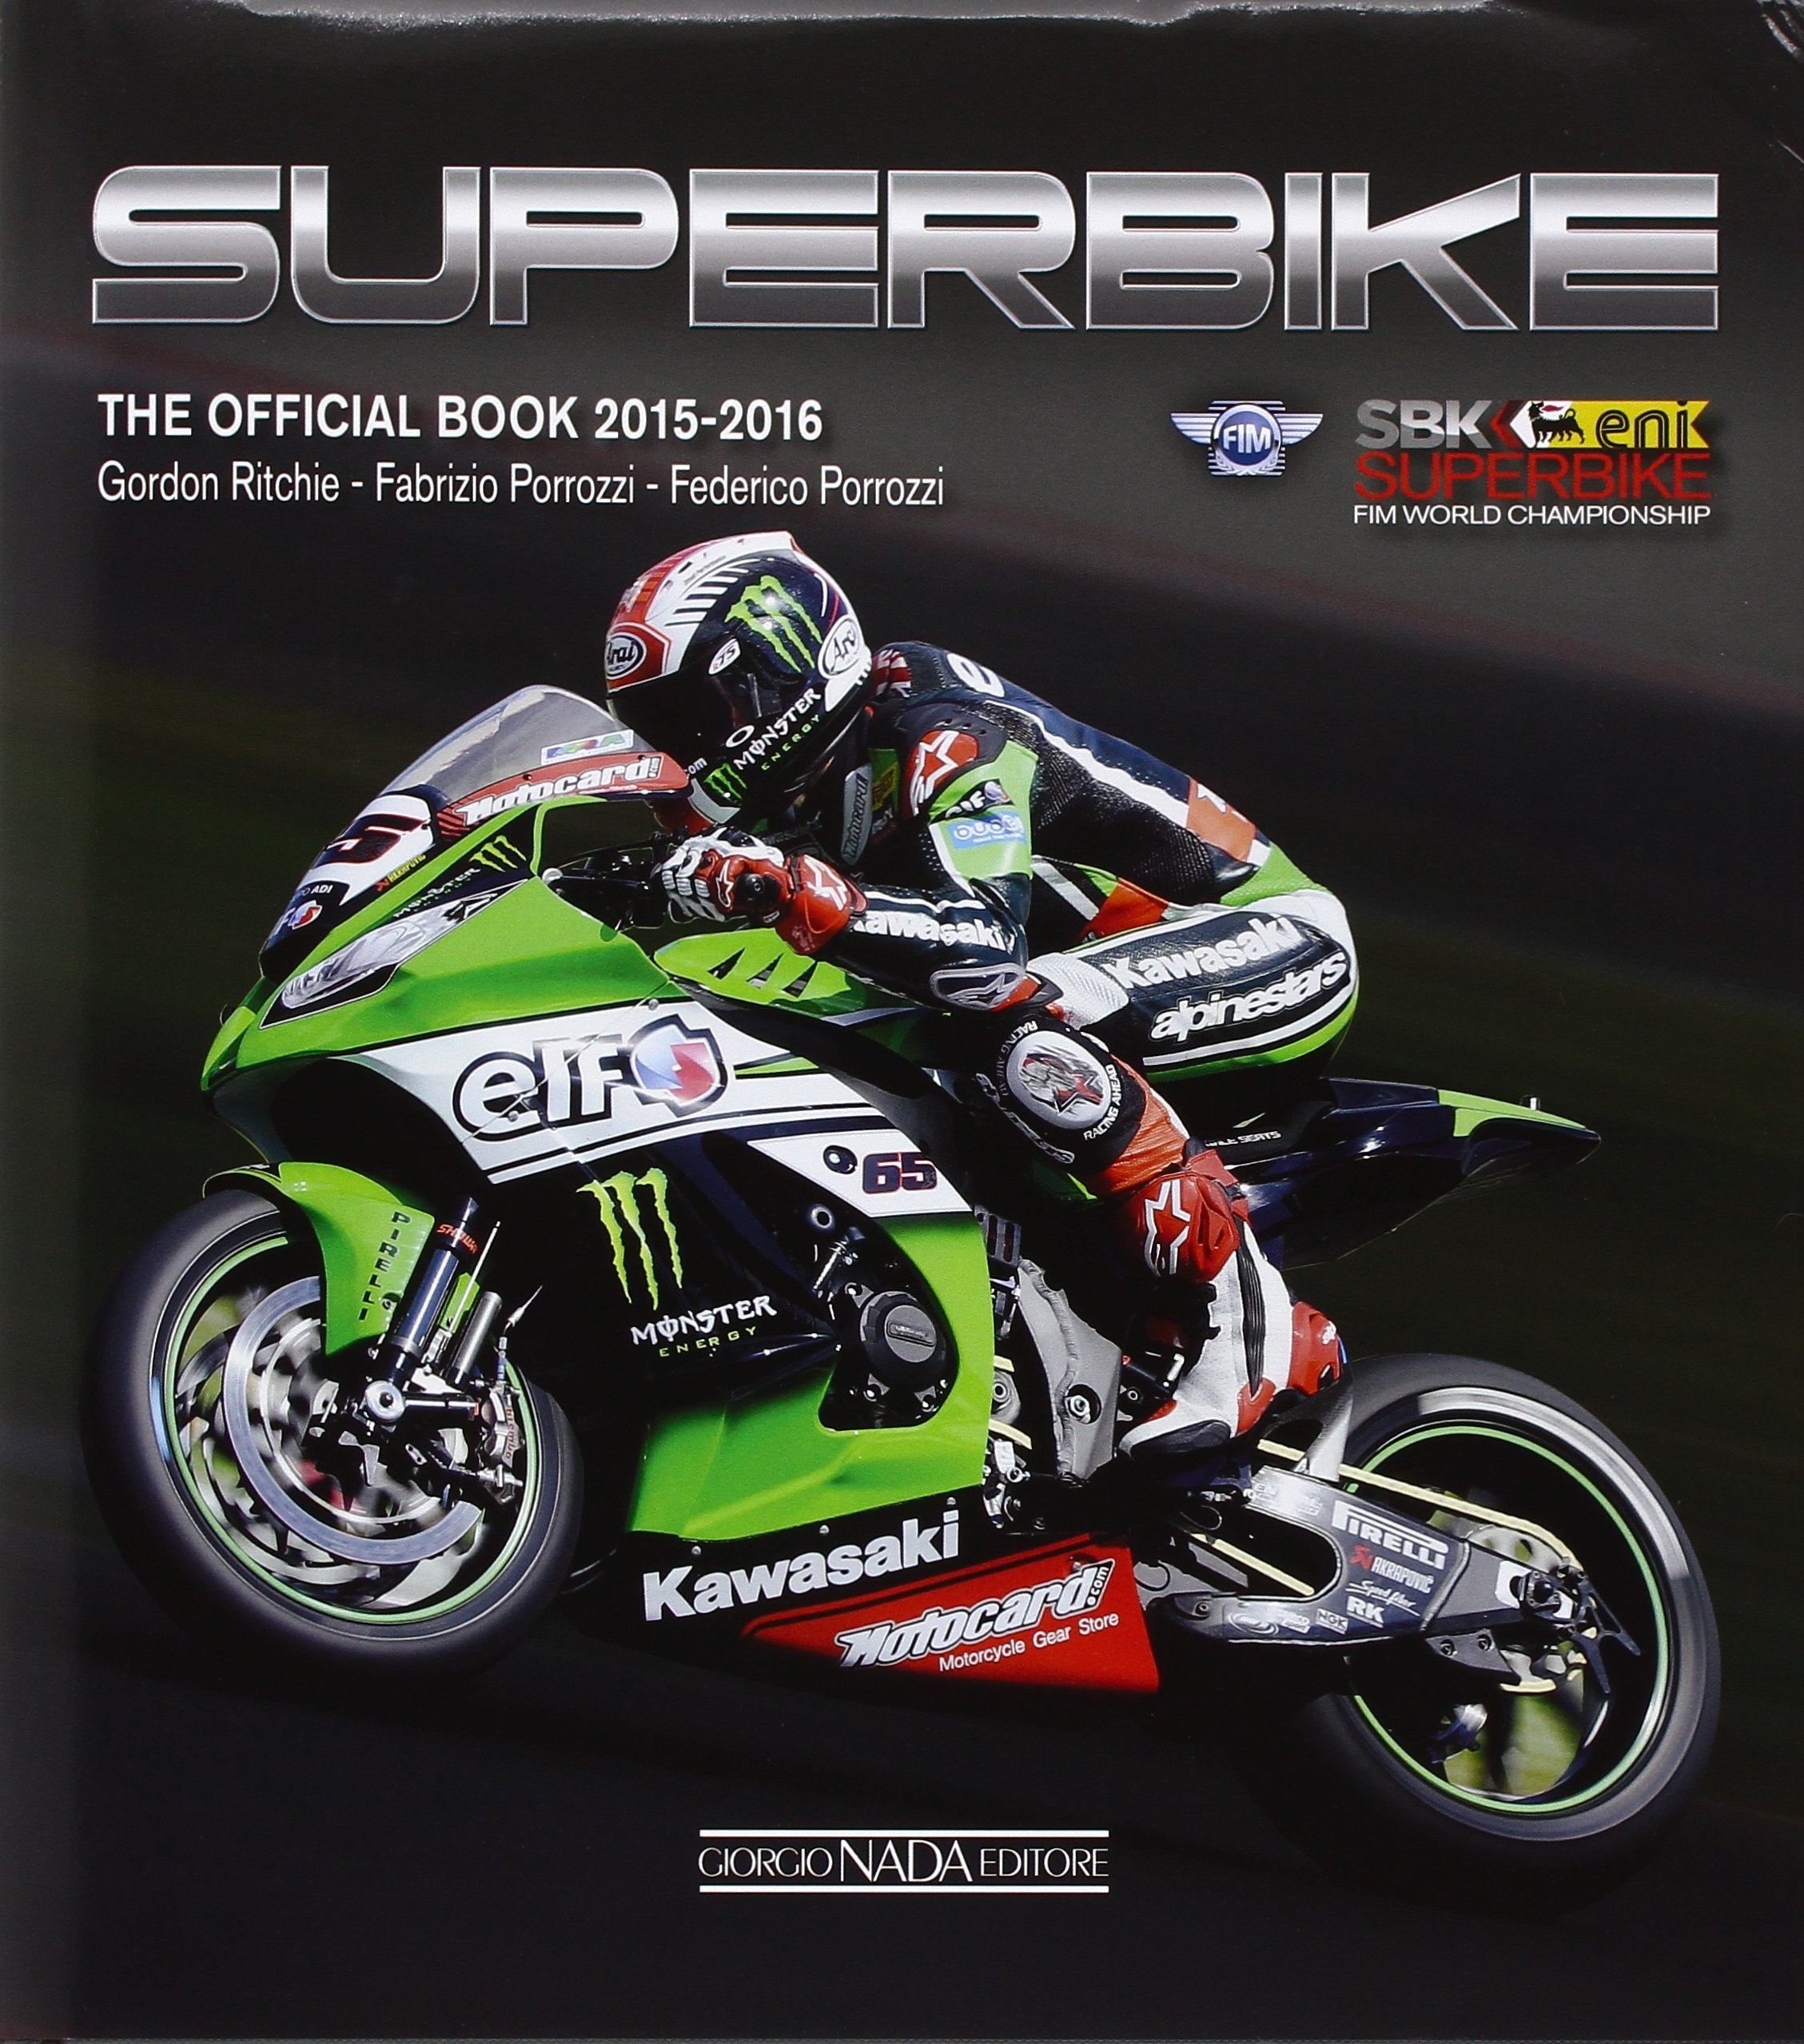 Superbike 2015/2016: The Official Book